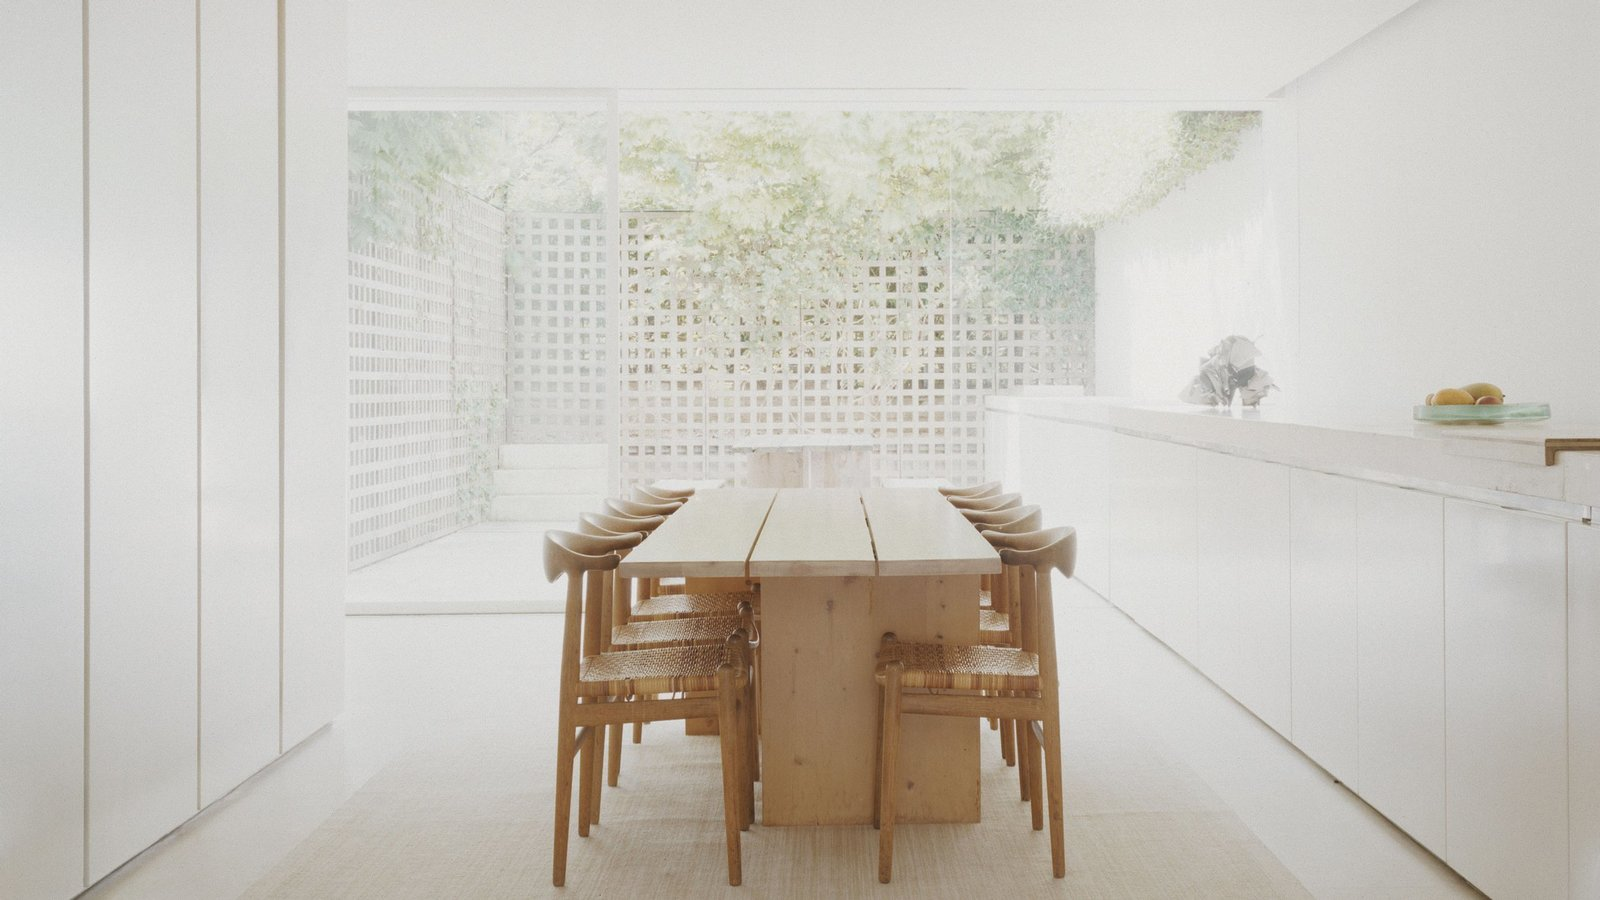 Via Dezeen, photo by John Spinks  Photo 8 of 11 in This Week's 10 Best Houses